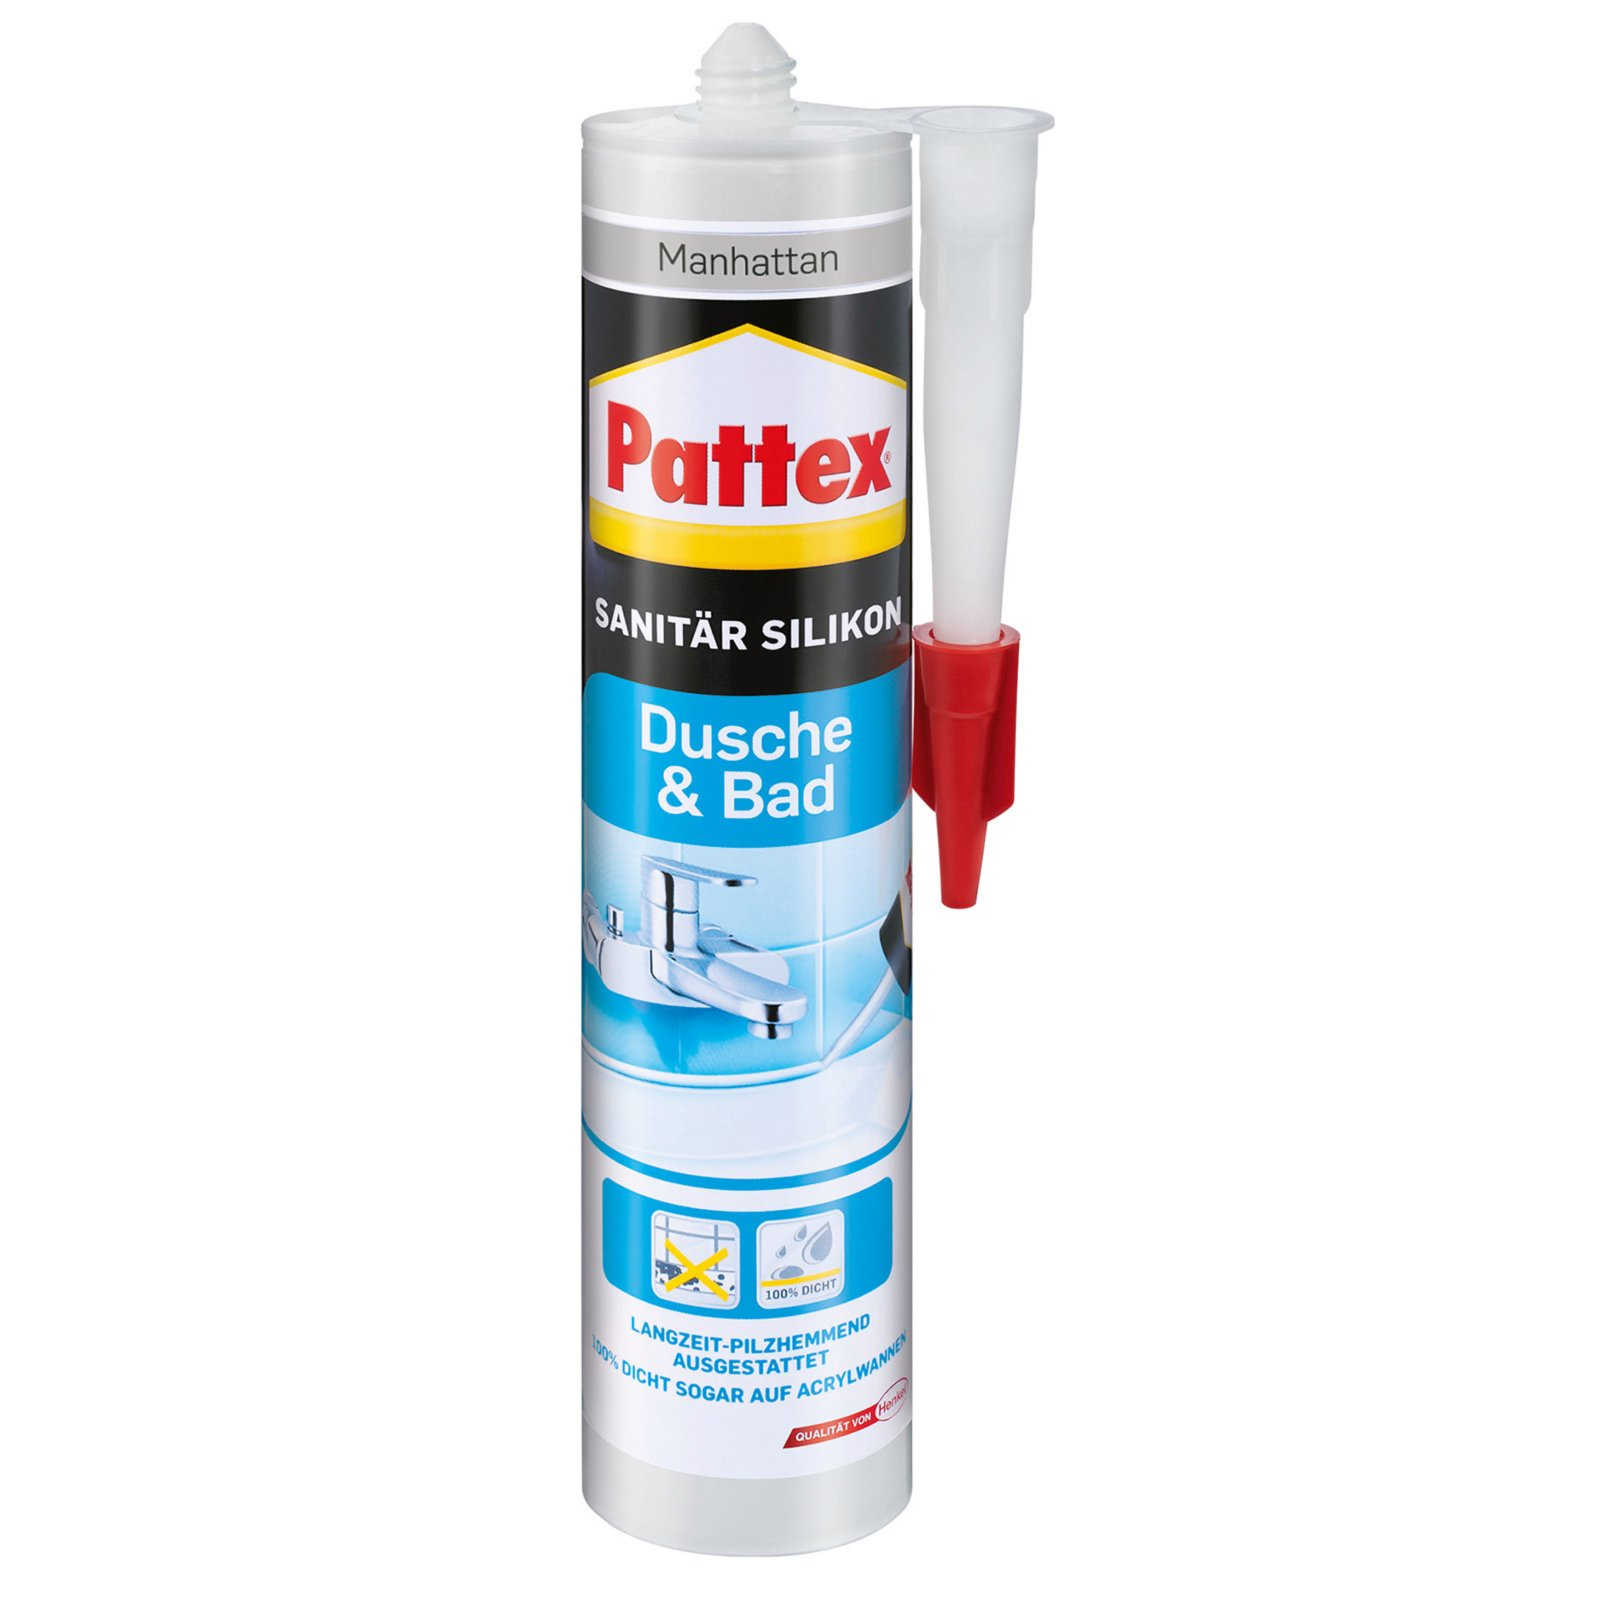 Pattex Sanitär Silikon - manhattan - 310 g